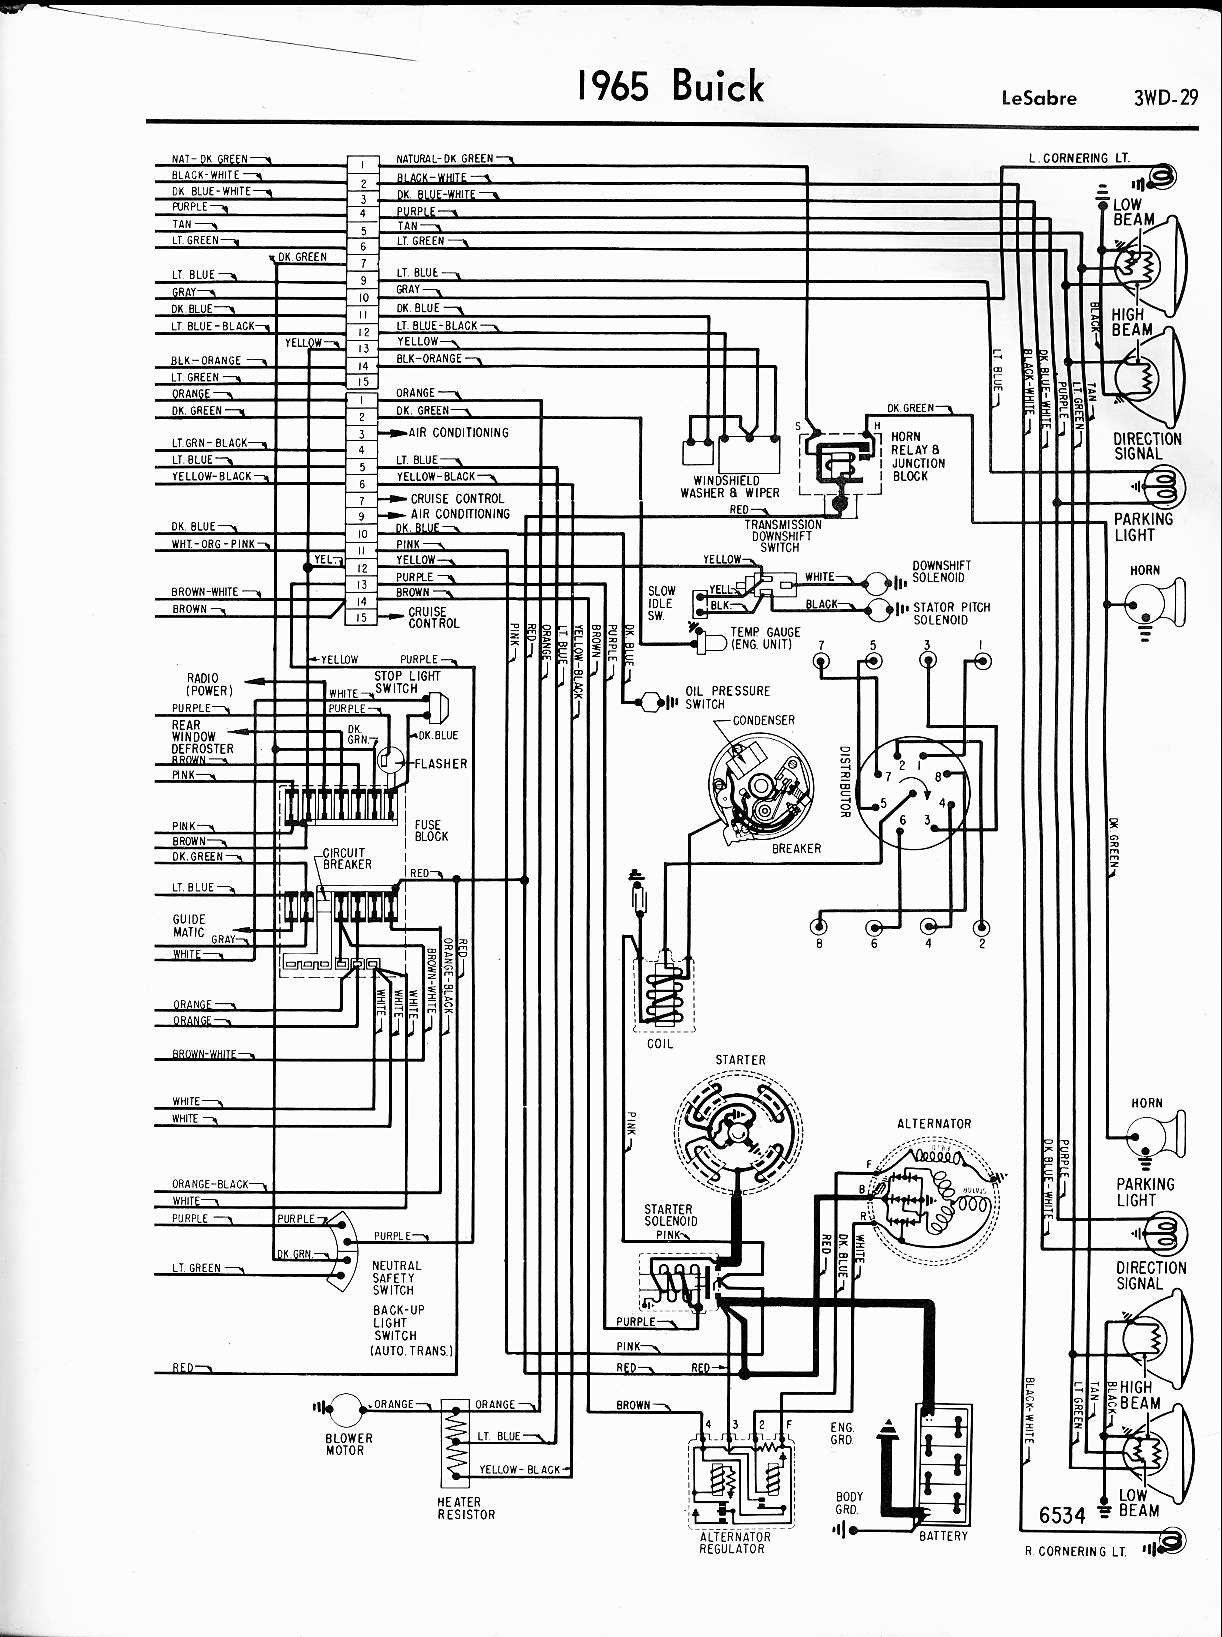 2000 Buick Lesabre Engine Diagram Free Buick Wiring Diagrams Data Schematics Wiring Diagram • Of 2000 Buick Lesabre Engine Diagram Free Buick Wiring Diagrams Data Schematics Wiring Diagram •